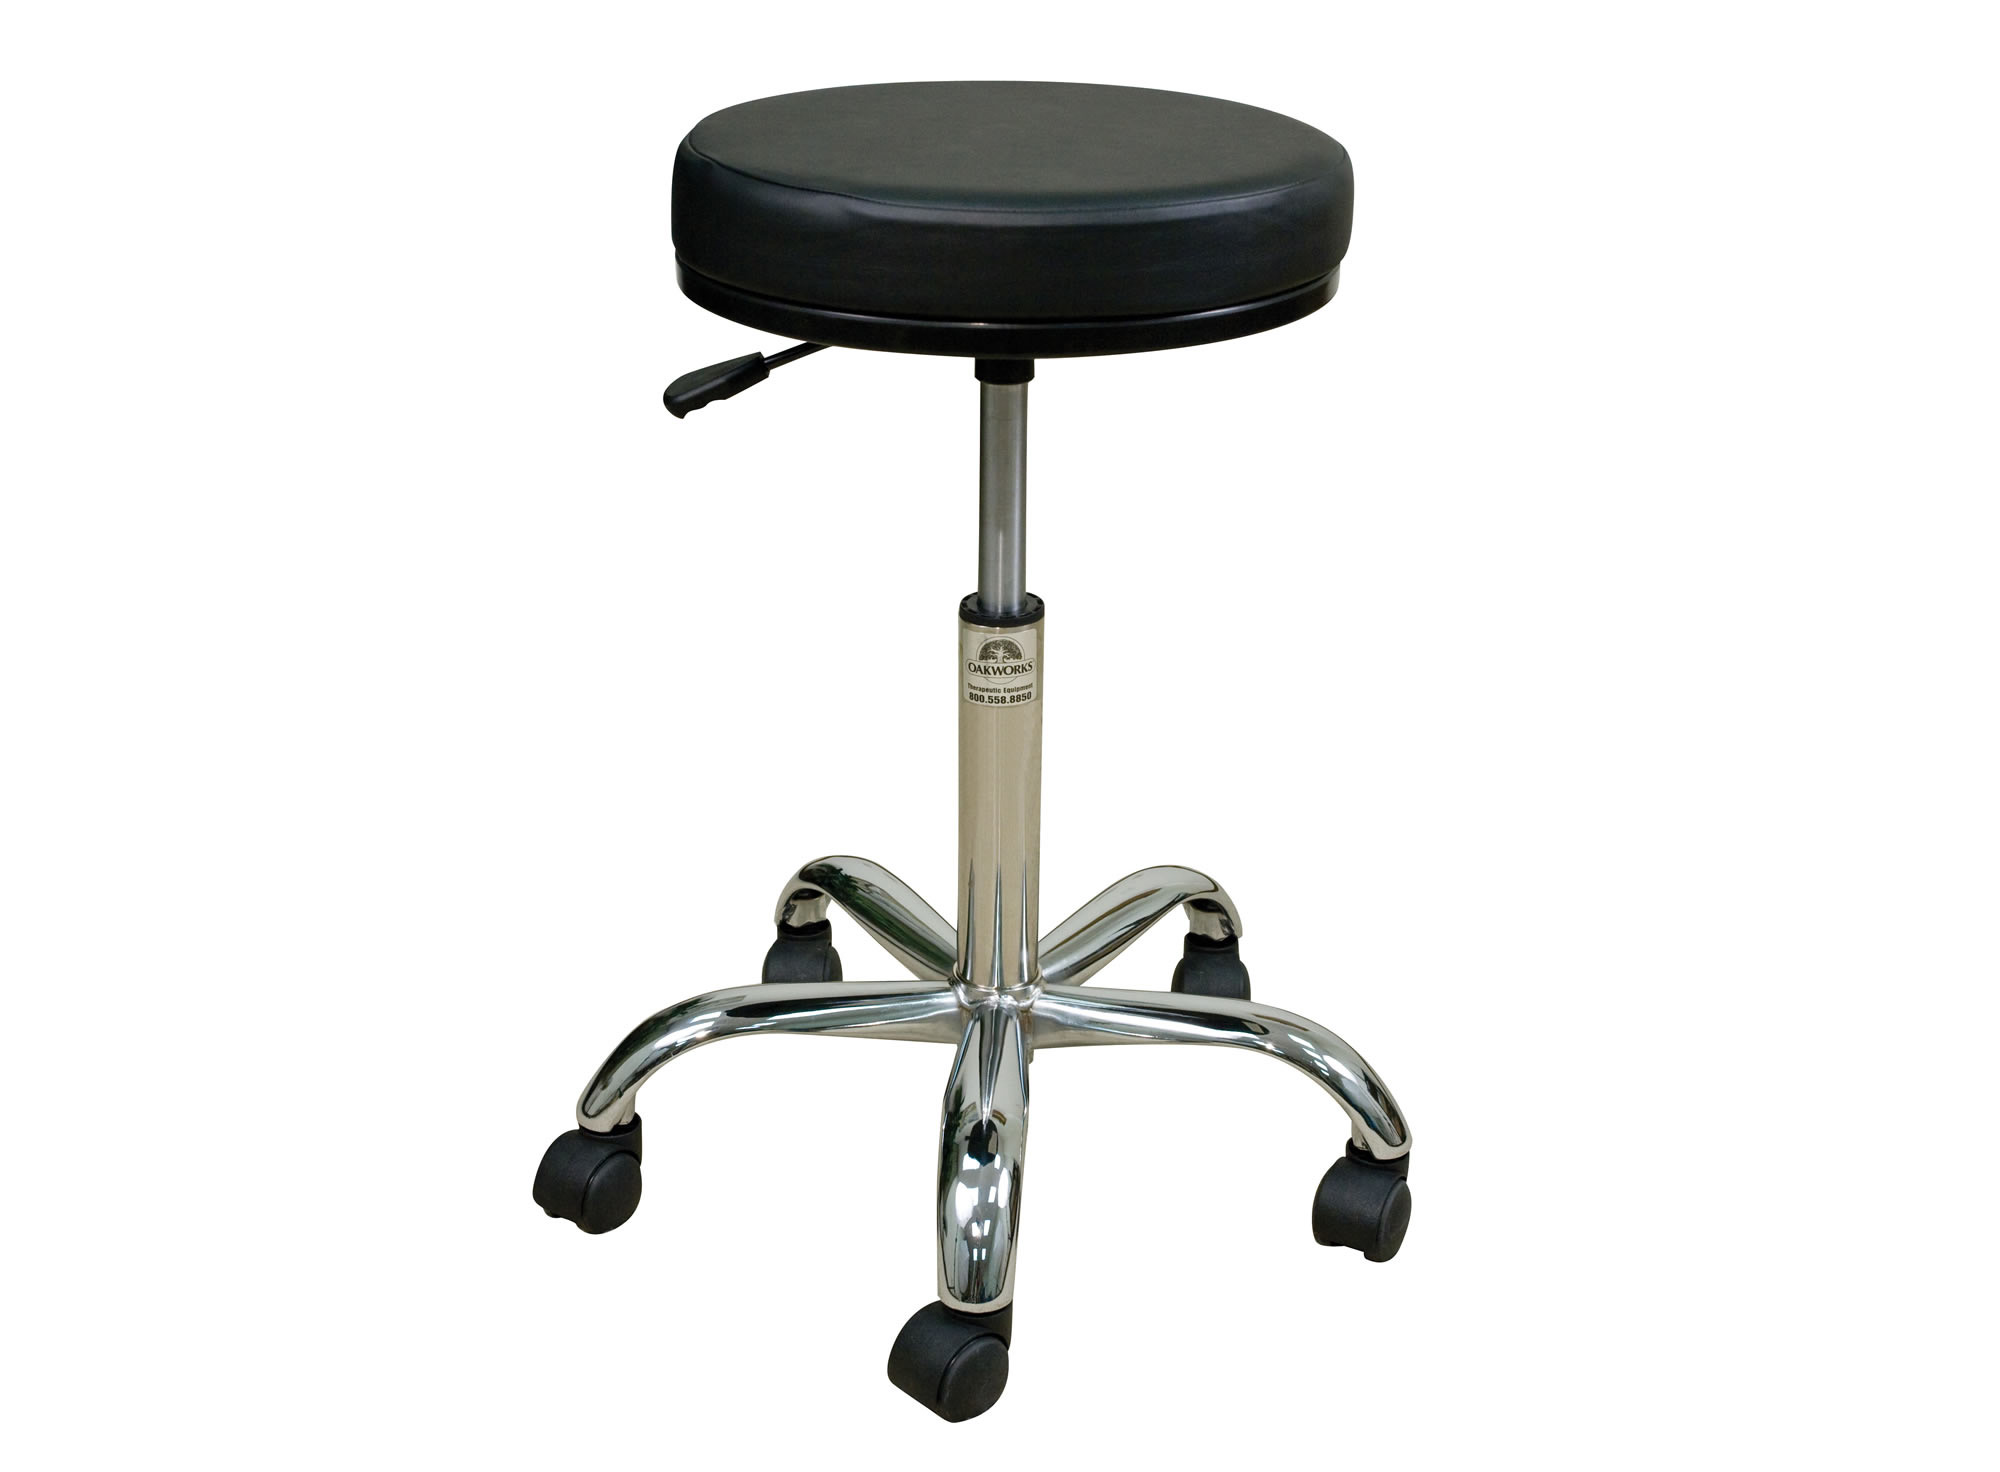 Professional Stool  sc 1 st  Oakworks Medical & Stools|Oakworks Medical Tables and Accessories islam-shia.org